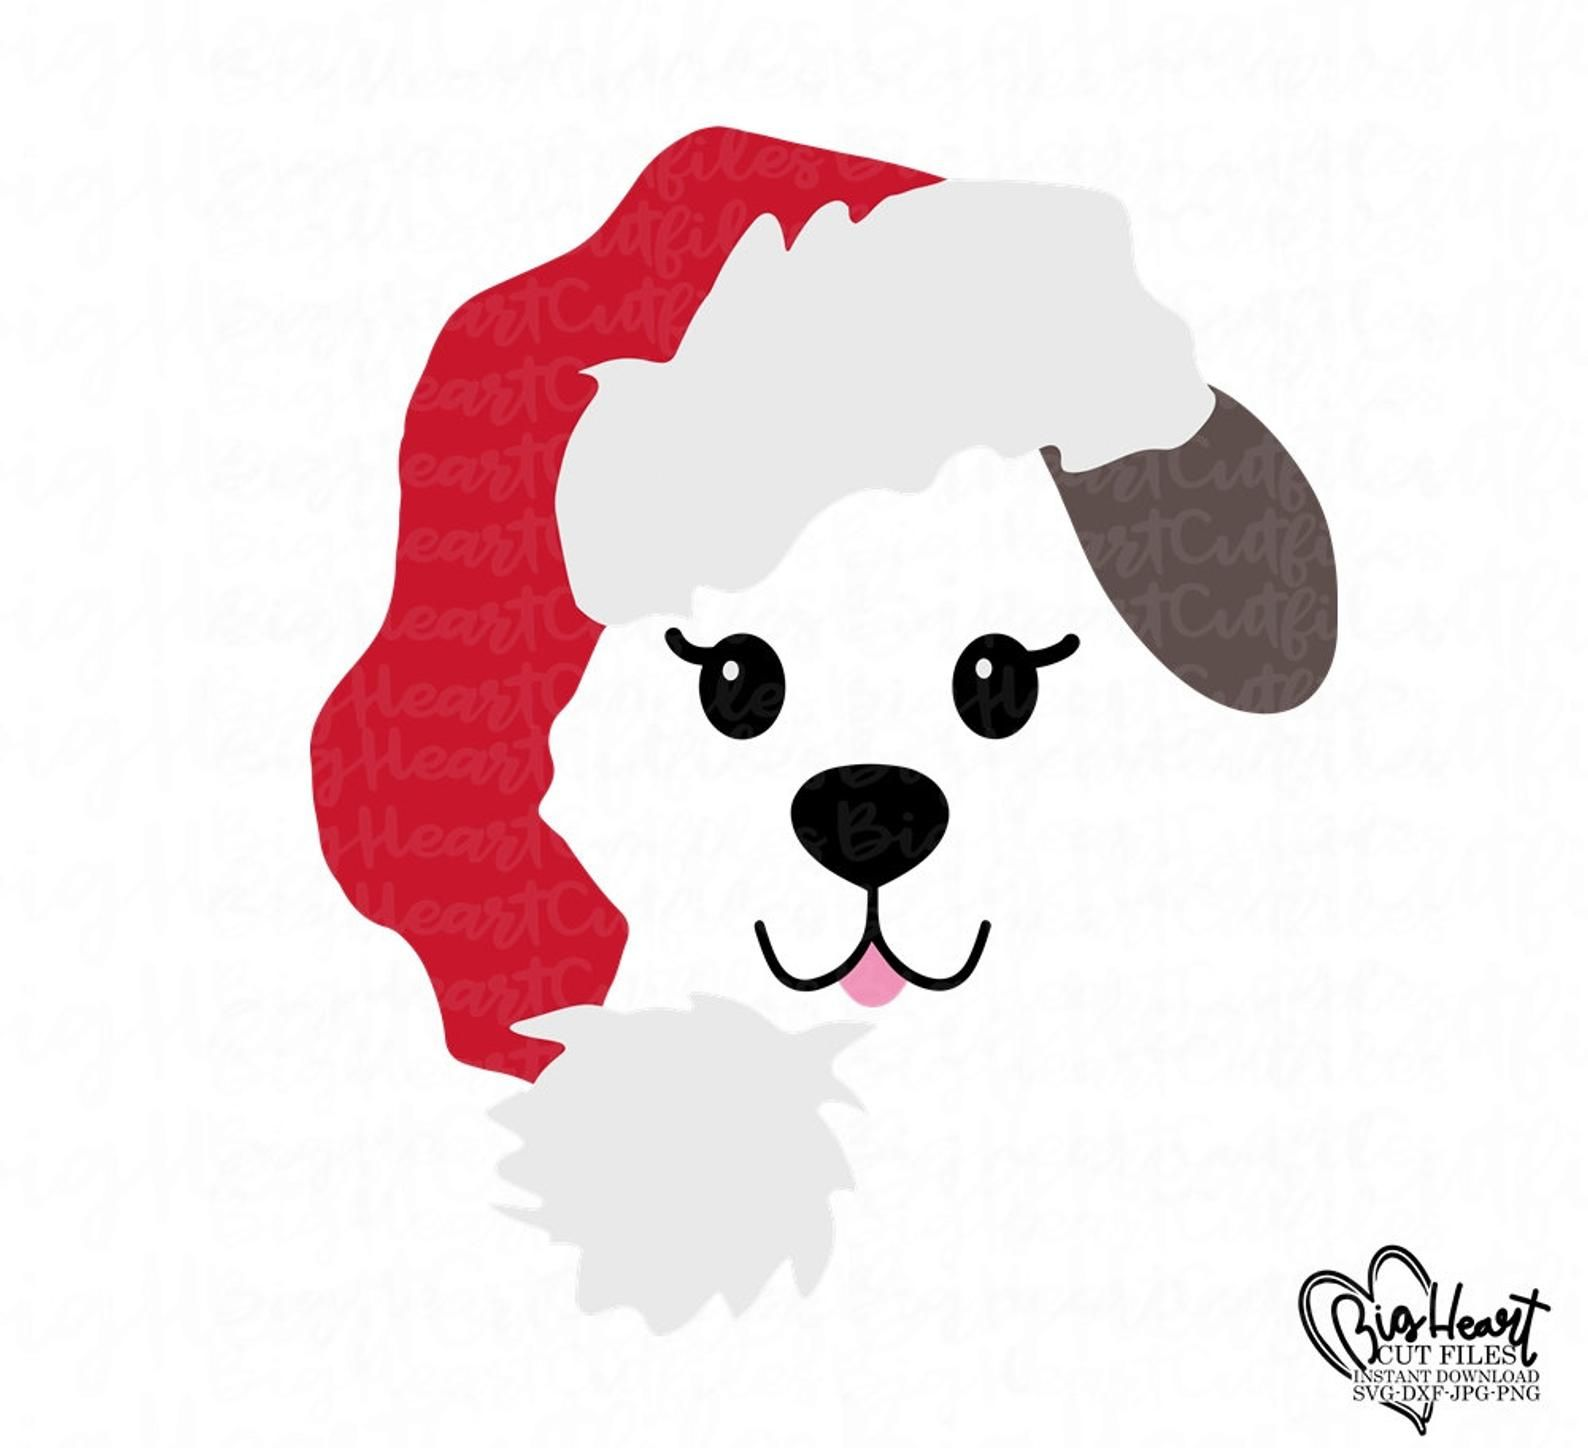 Christmas Puppy Svgsanta Puppy Svgpuppy With Santa Hat Etsy In 2020 Christmas Puppy Christmas Svg Puppies